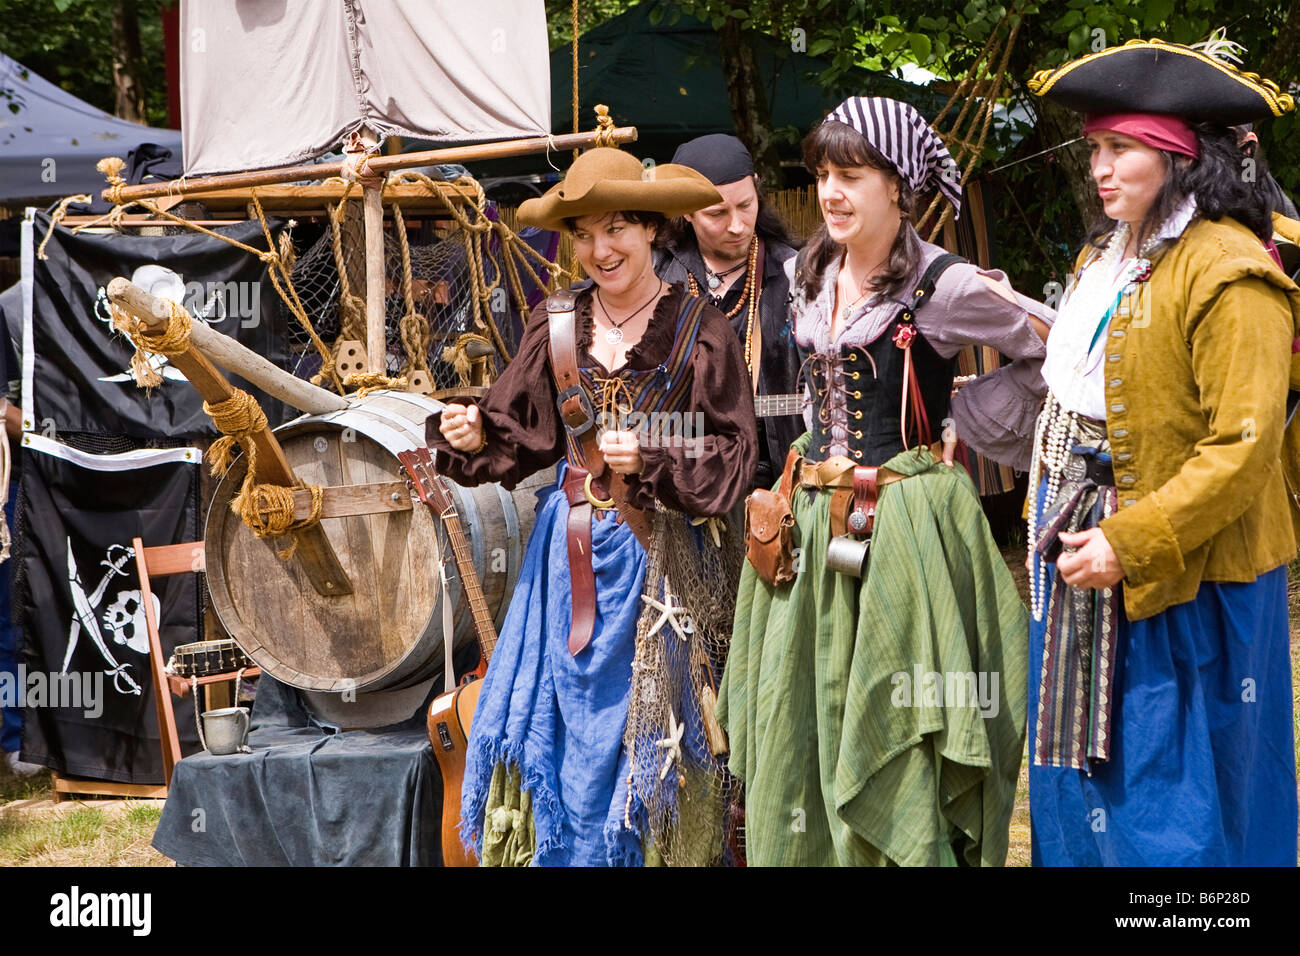 Image of a group of women all dressed in pirate costumes singing and playing instruments at a Renaissance Fair - Stock Image